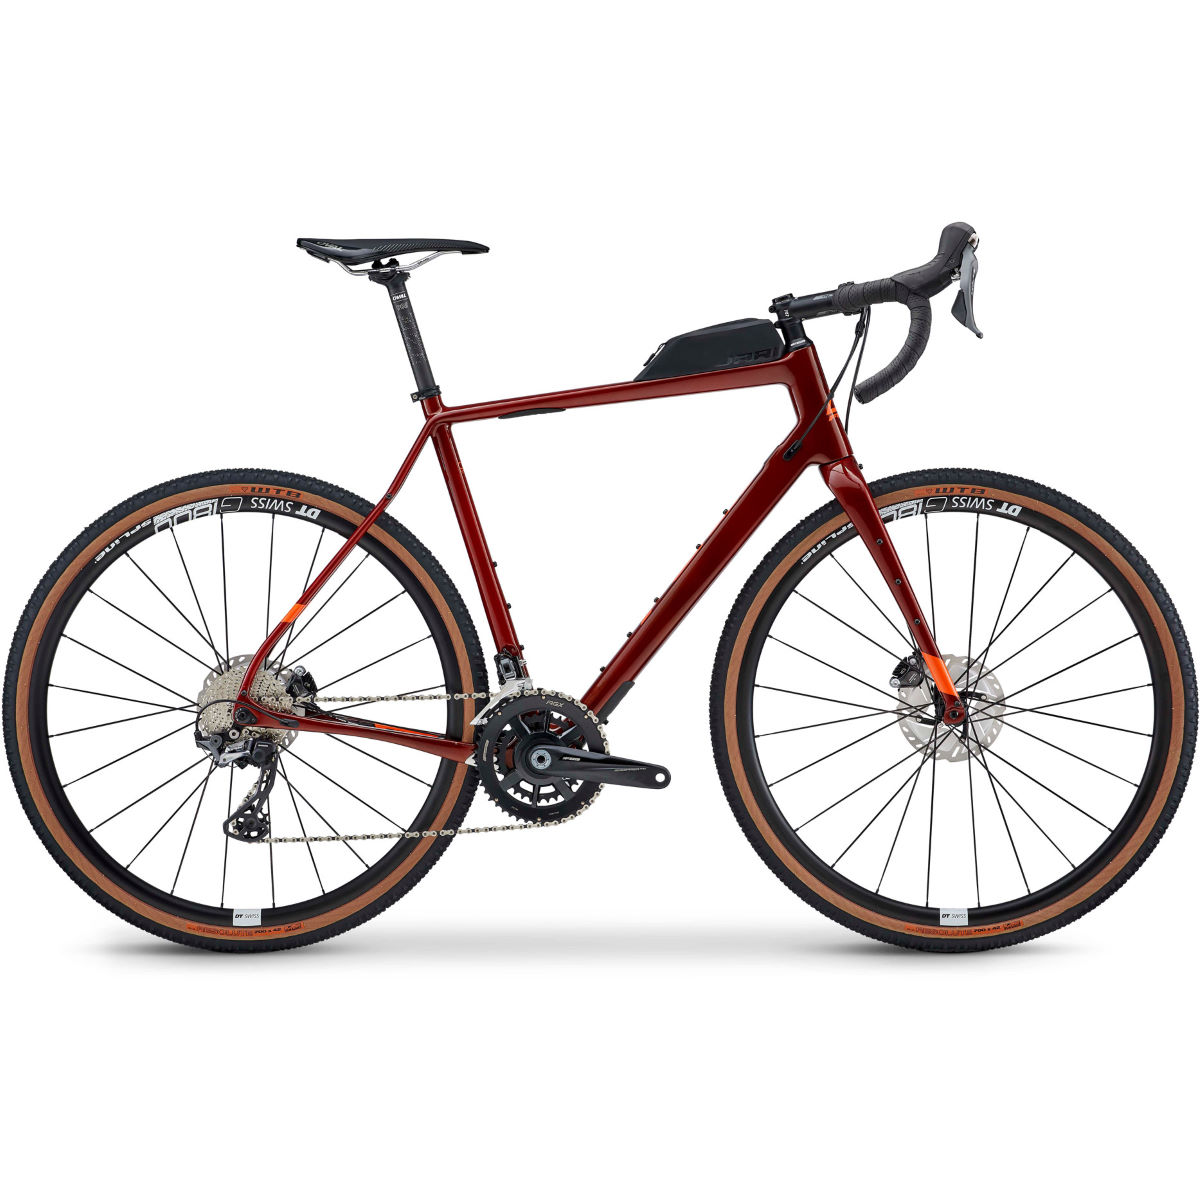 Fuji Fuji Jari Carbon 1.1 Gravel Bike (2021)   Adventure Bikes